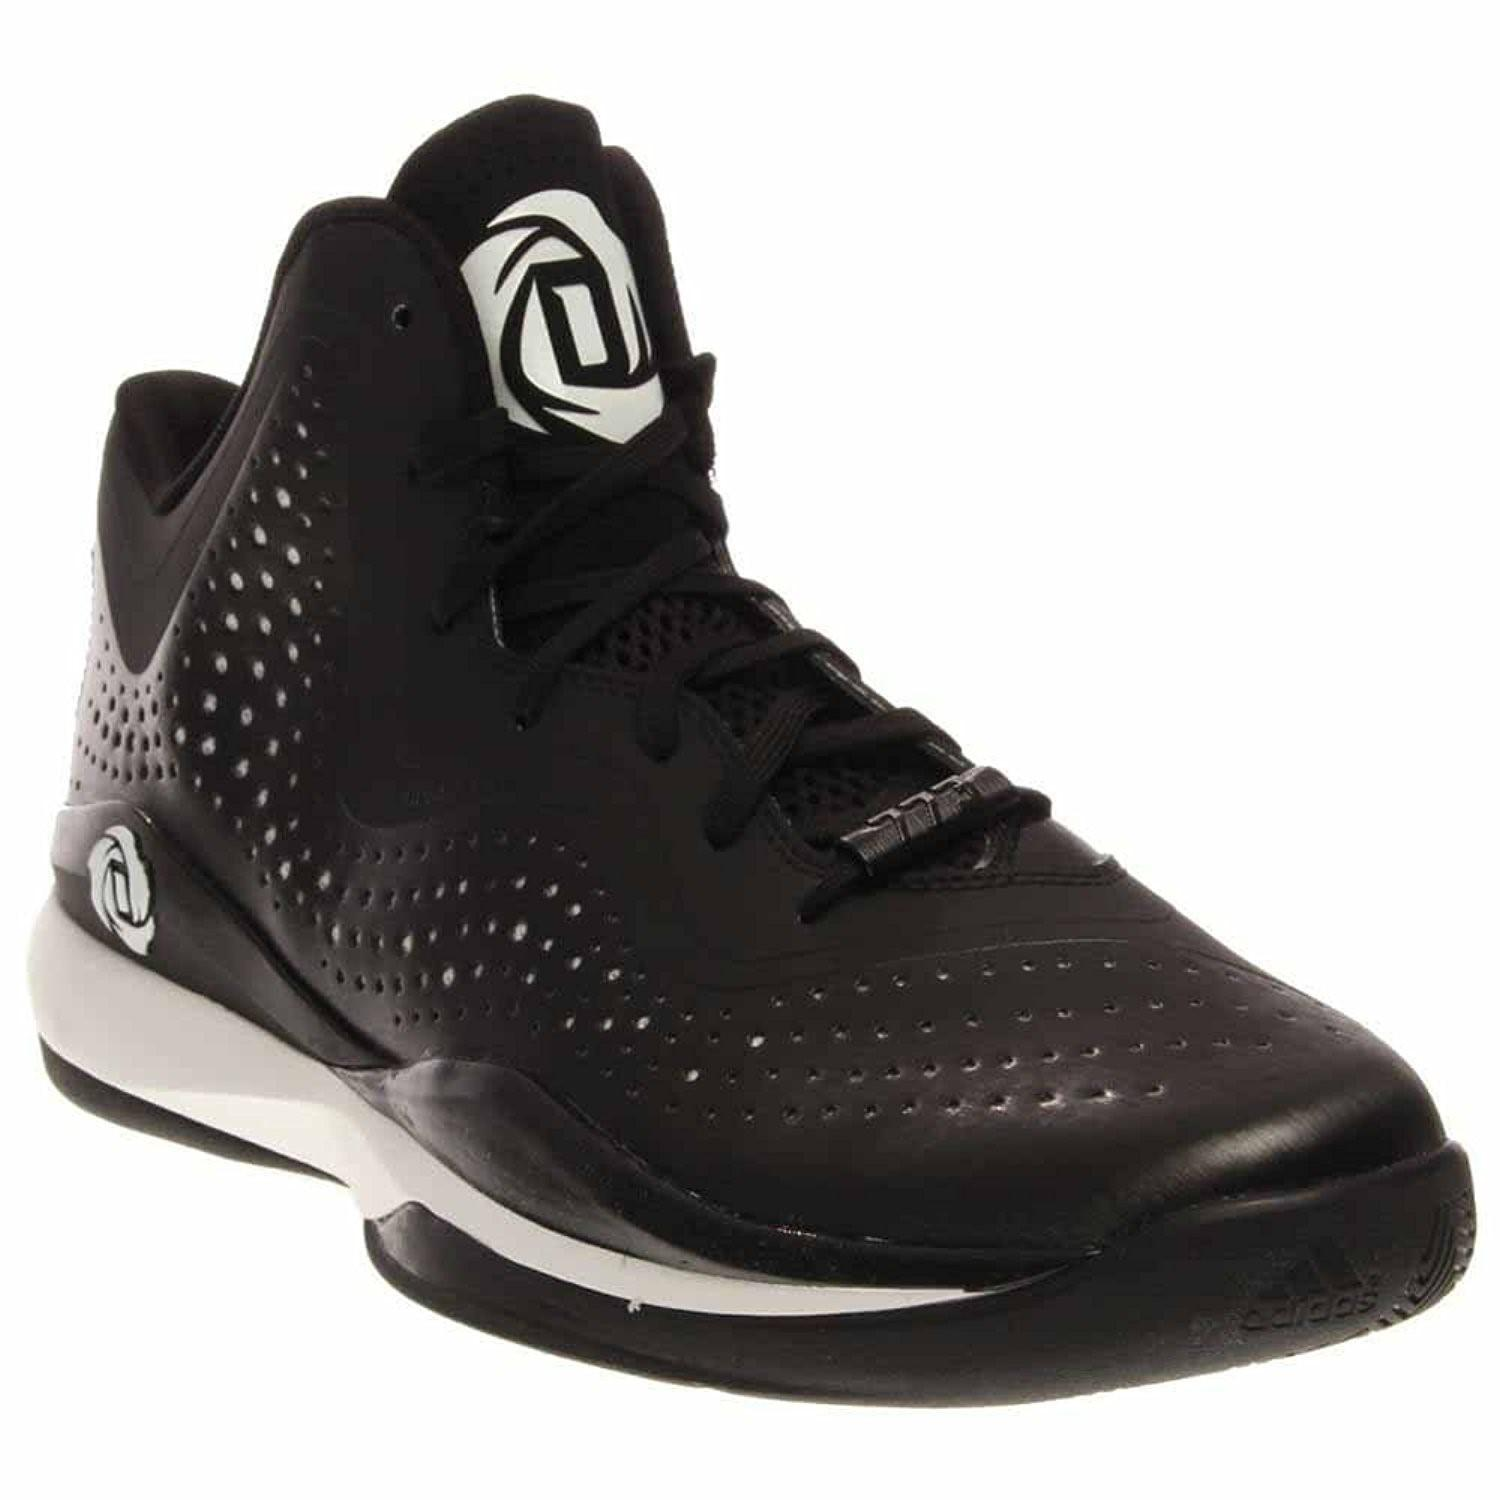 3b2e23d5eda6 Lyst - adidas D Rose 773 Iii Basketball Shoes in Black for Men